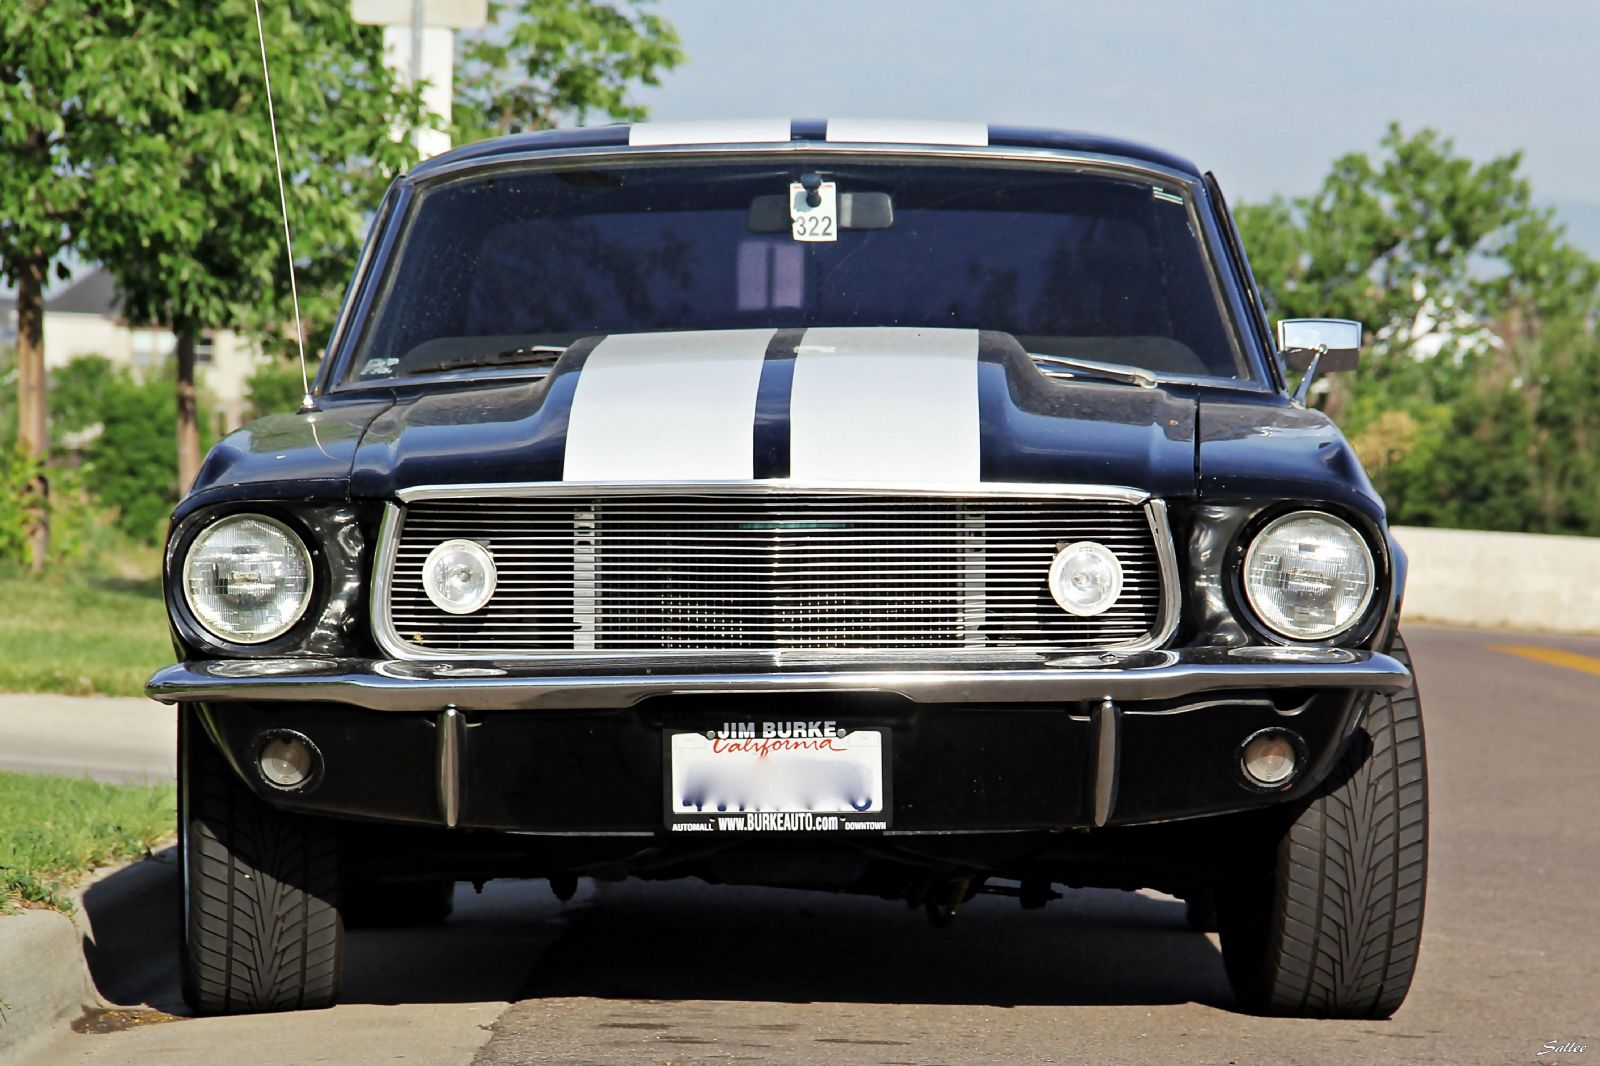 68 mustang coupe for sale autos post. Black Bedroom Furniture Sets. Home Design Ideas